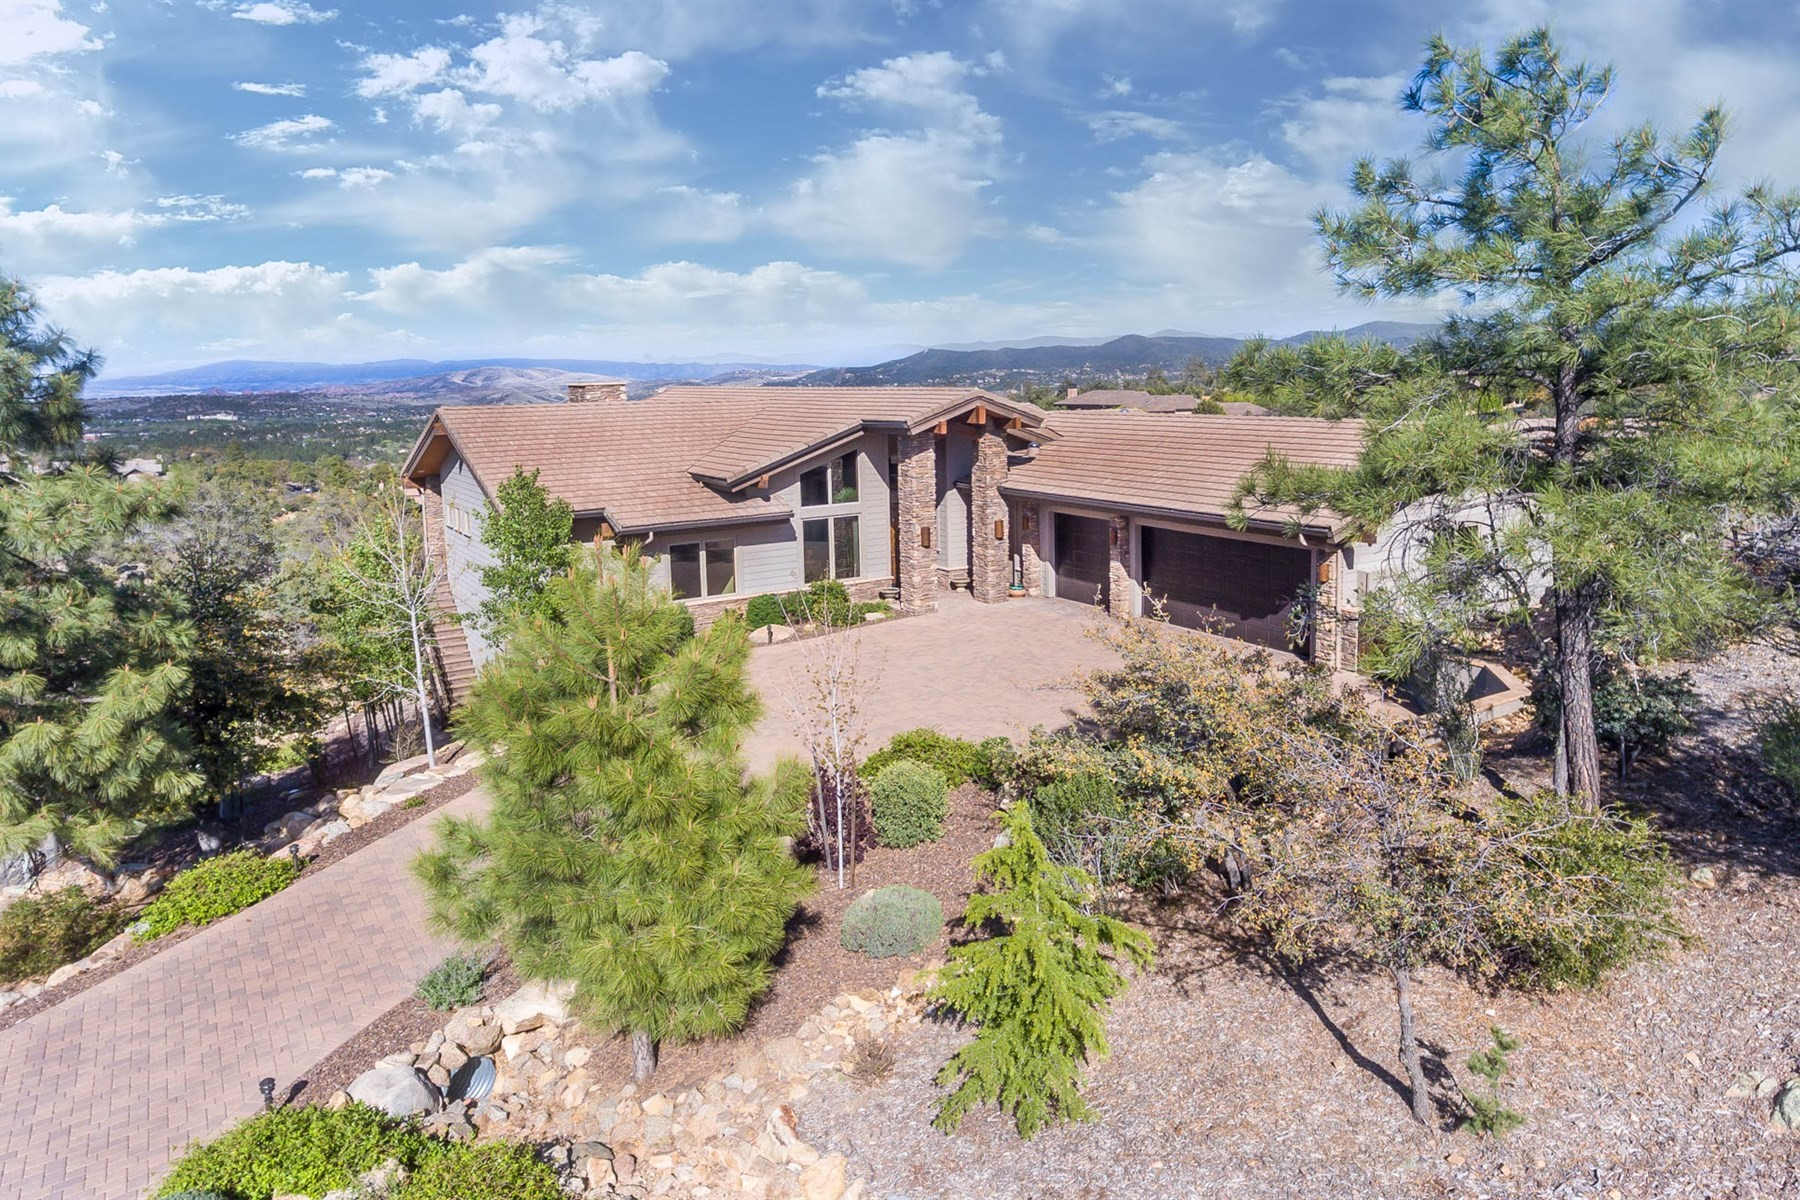 Casa Unifamiliar por un Venta en Custom two story home with amazing views 871 Mavrick Mountain Trl Prescott, Arizona, 86303 Estados Unidos